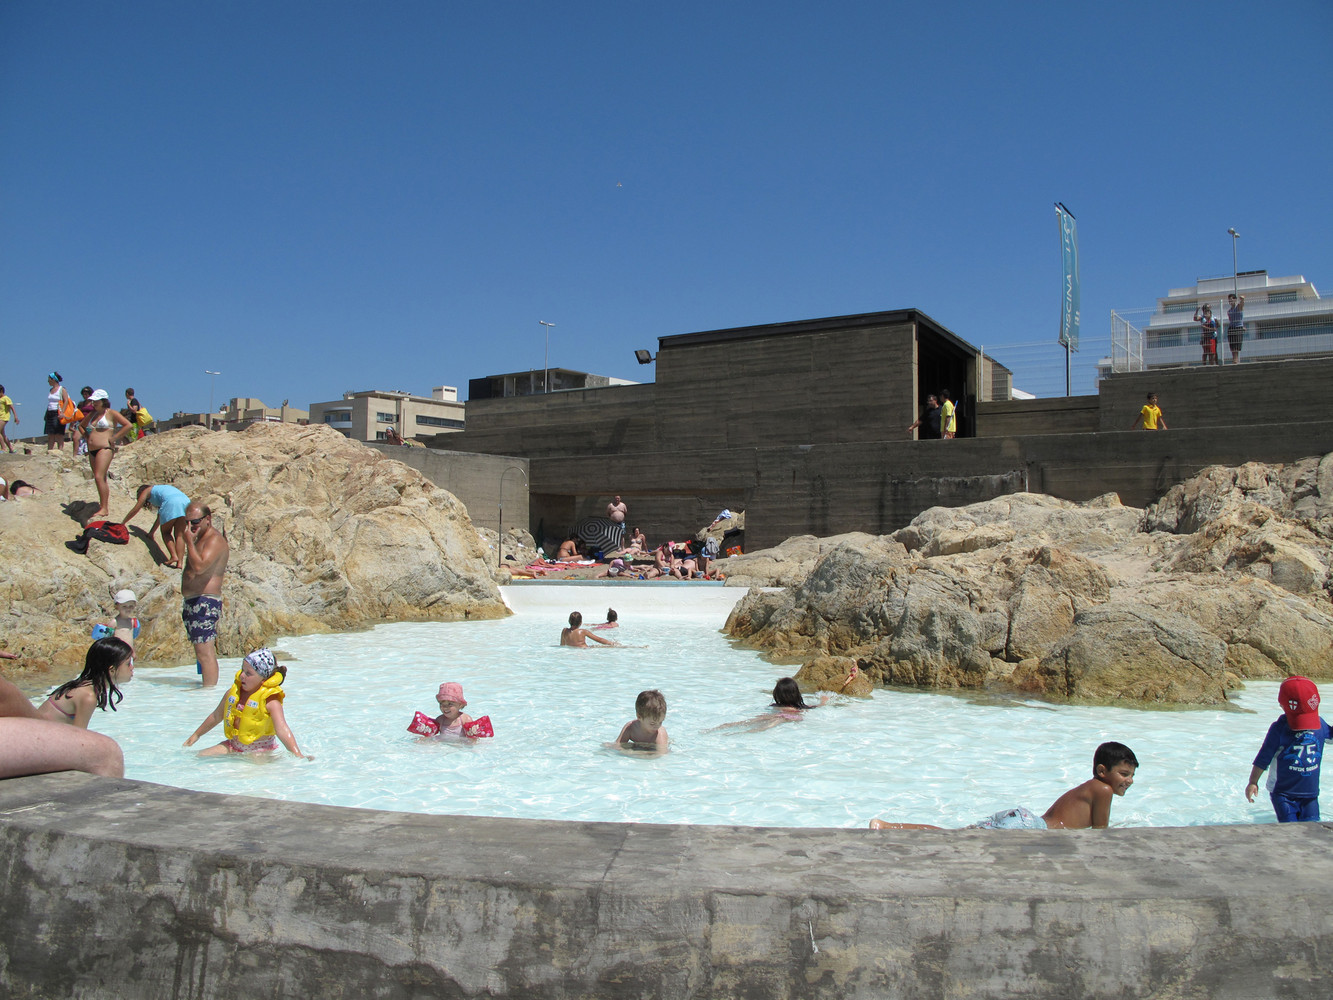 10 Incredible Public Pools from Across the Globe